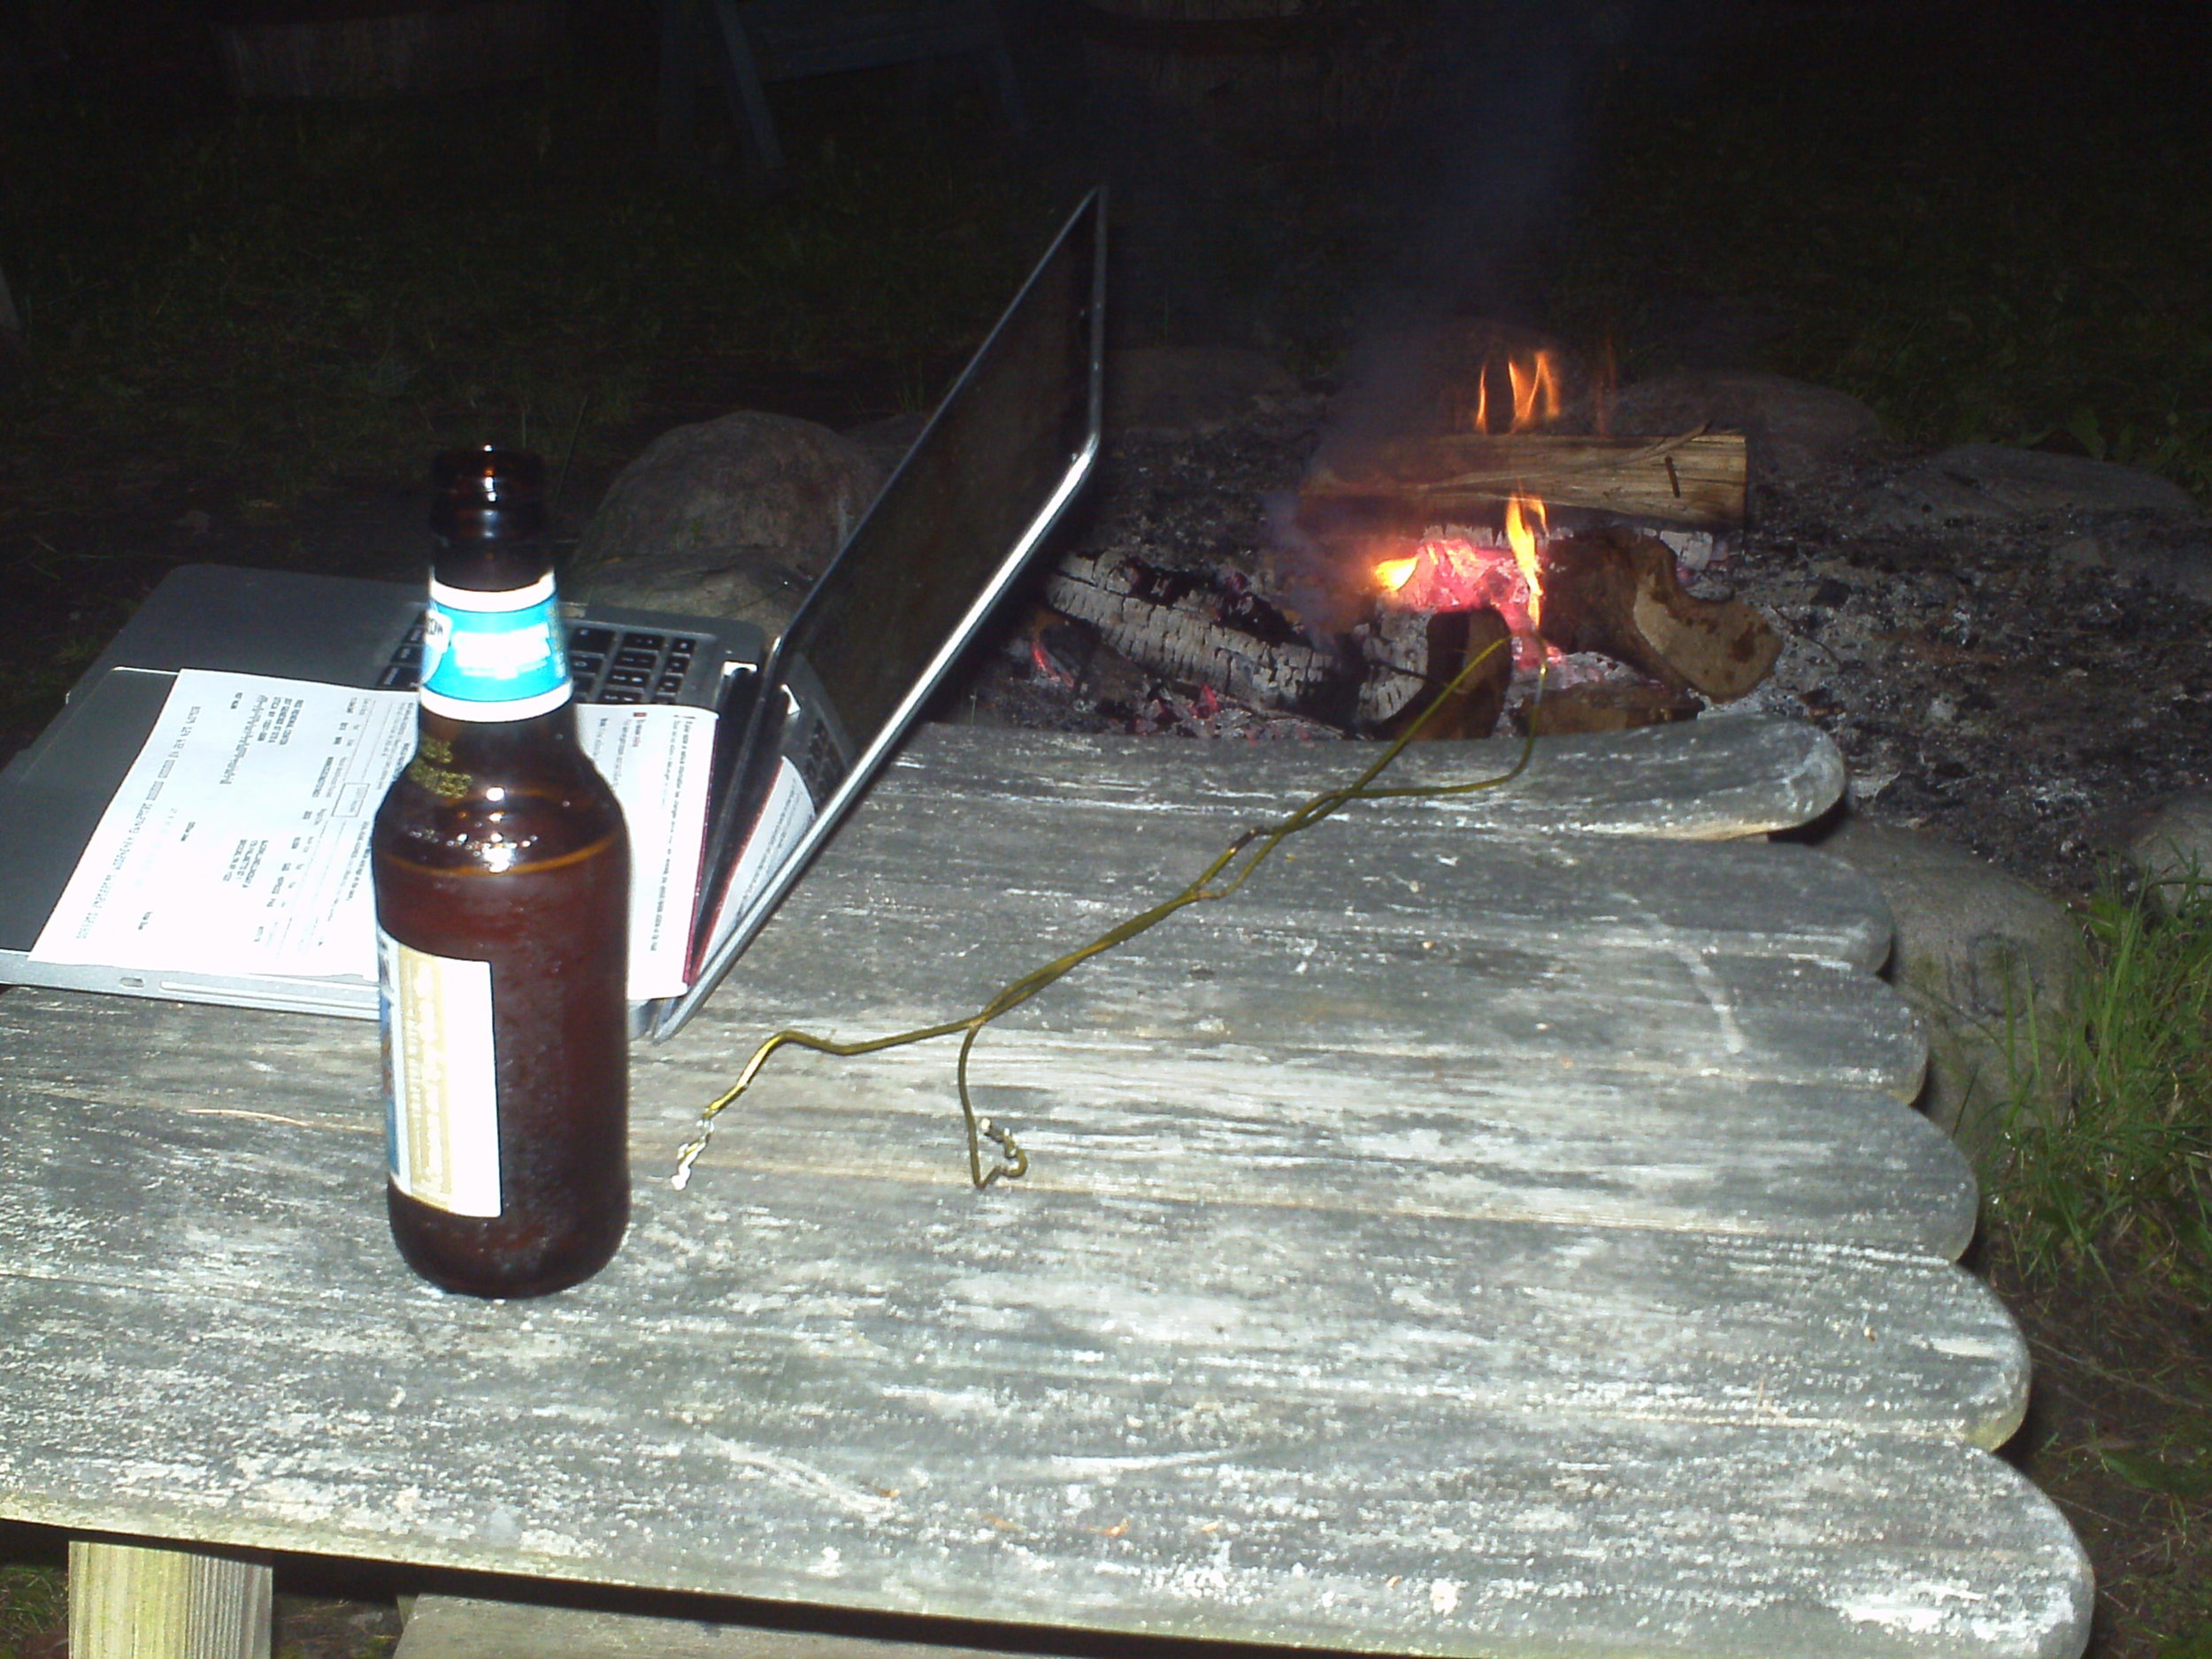 We had wifi reception by the fire pit (no work allowed though!)